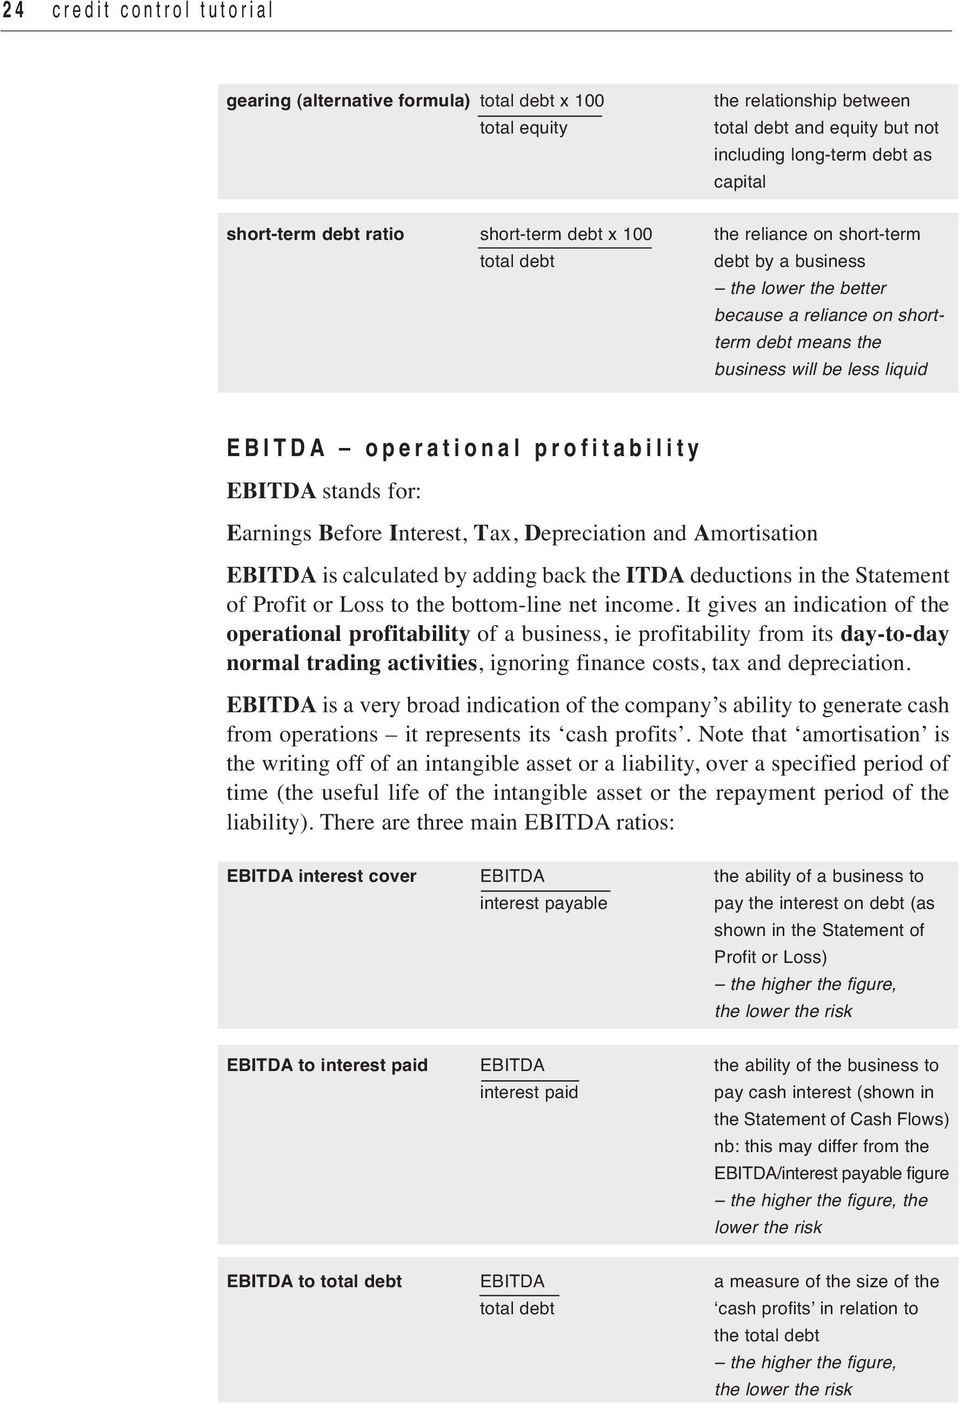 B i t d a o p e r a t i o n a l p r o f i t a b i l i t y EBITDA stands for: Earnings Before Interest, Tax, Depreciation and Amortisation EBITDA is calculated by adding back the ITDA deductions in